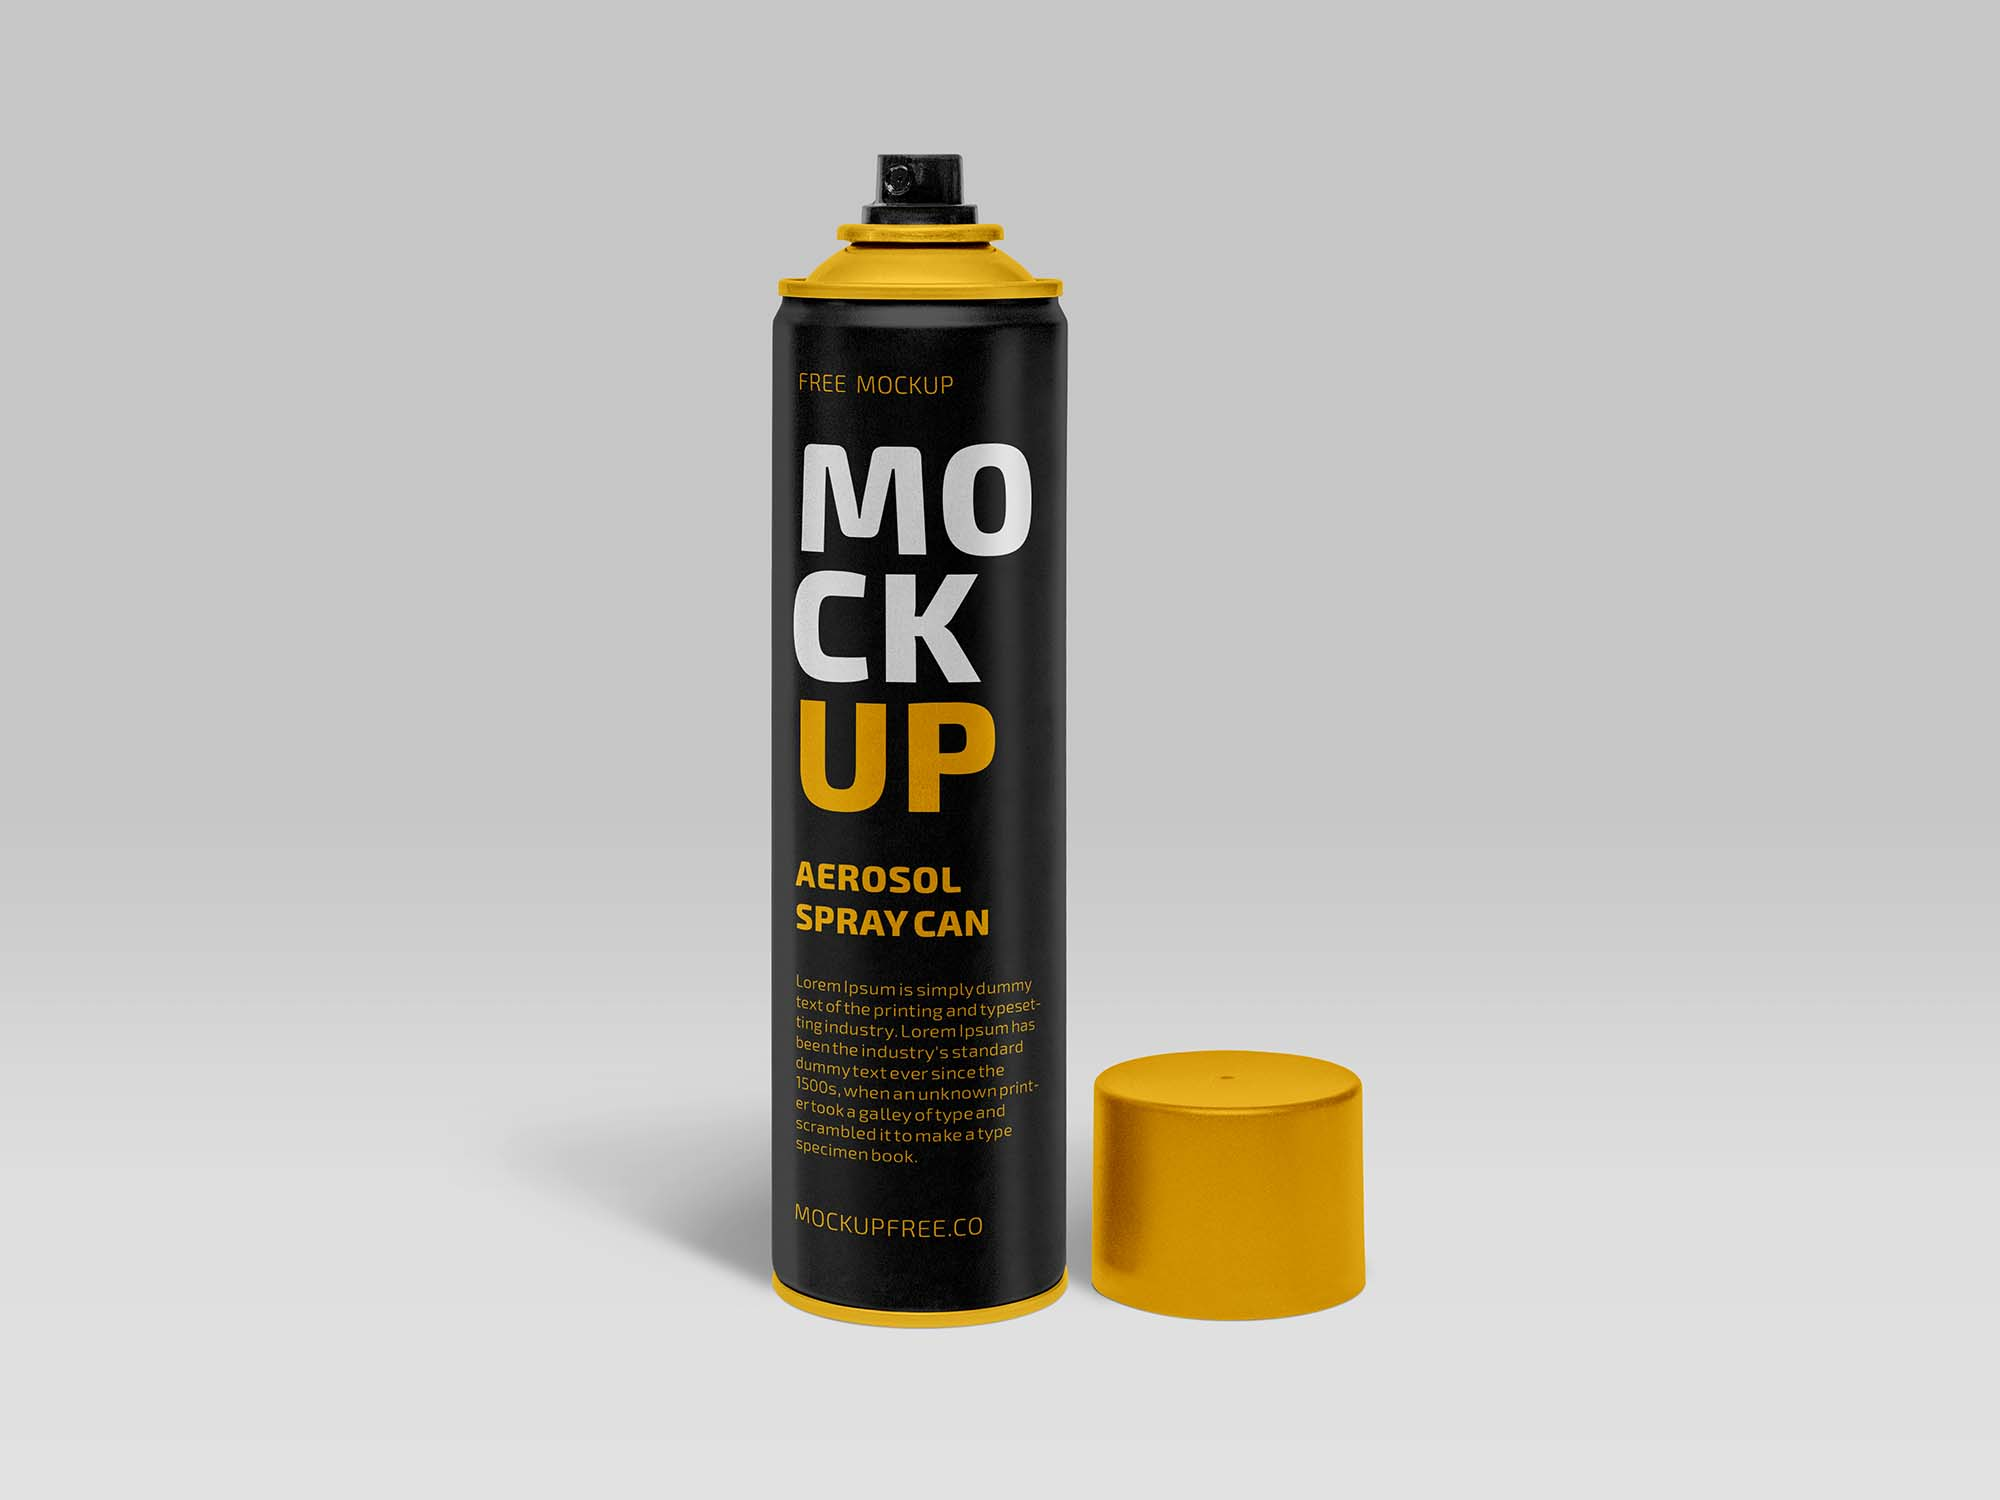 Aerosol Spray Can Mockup